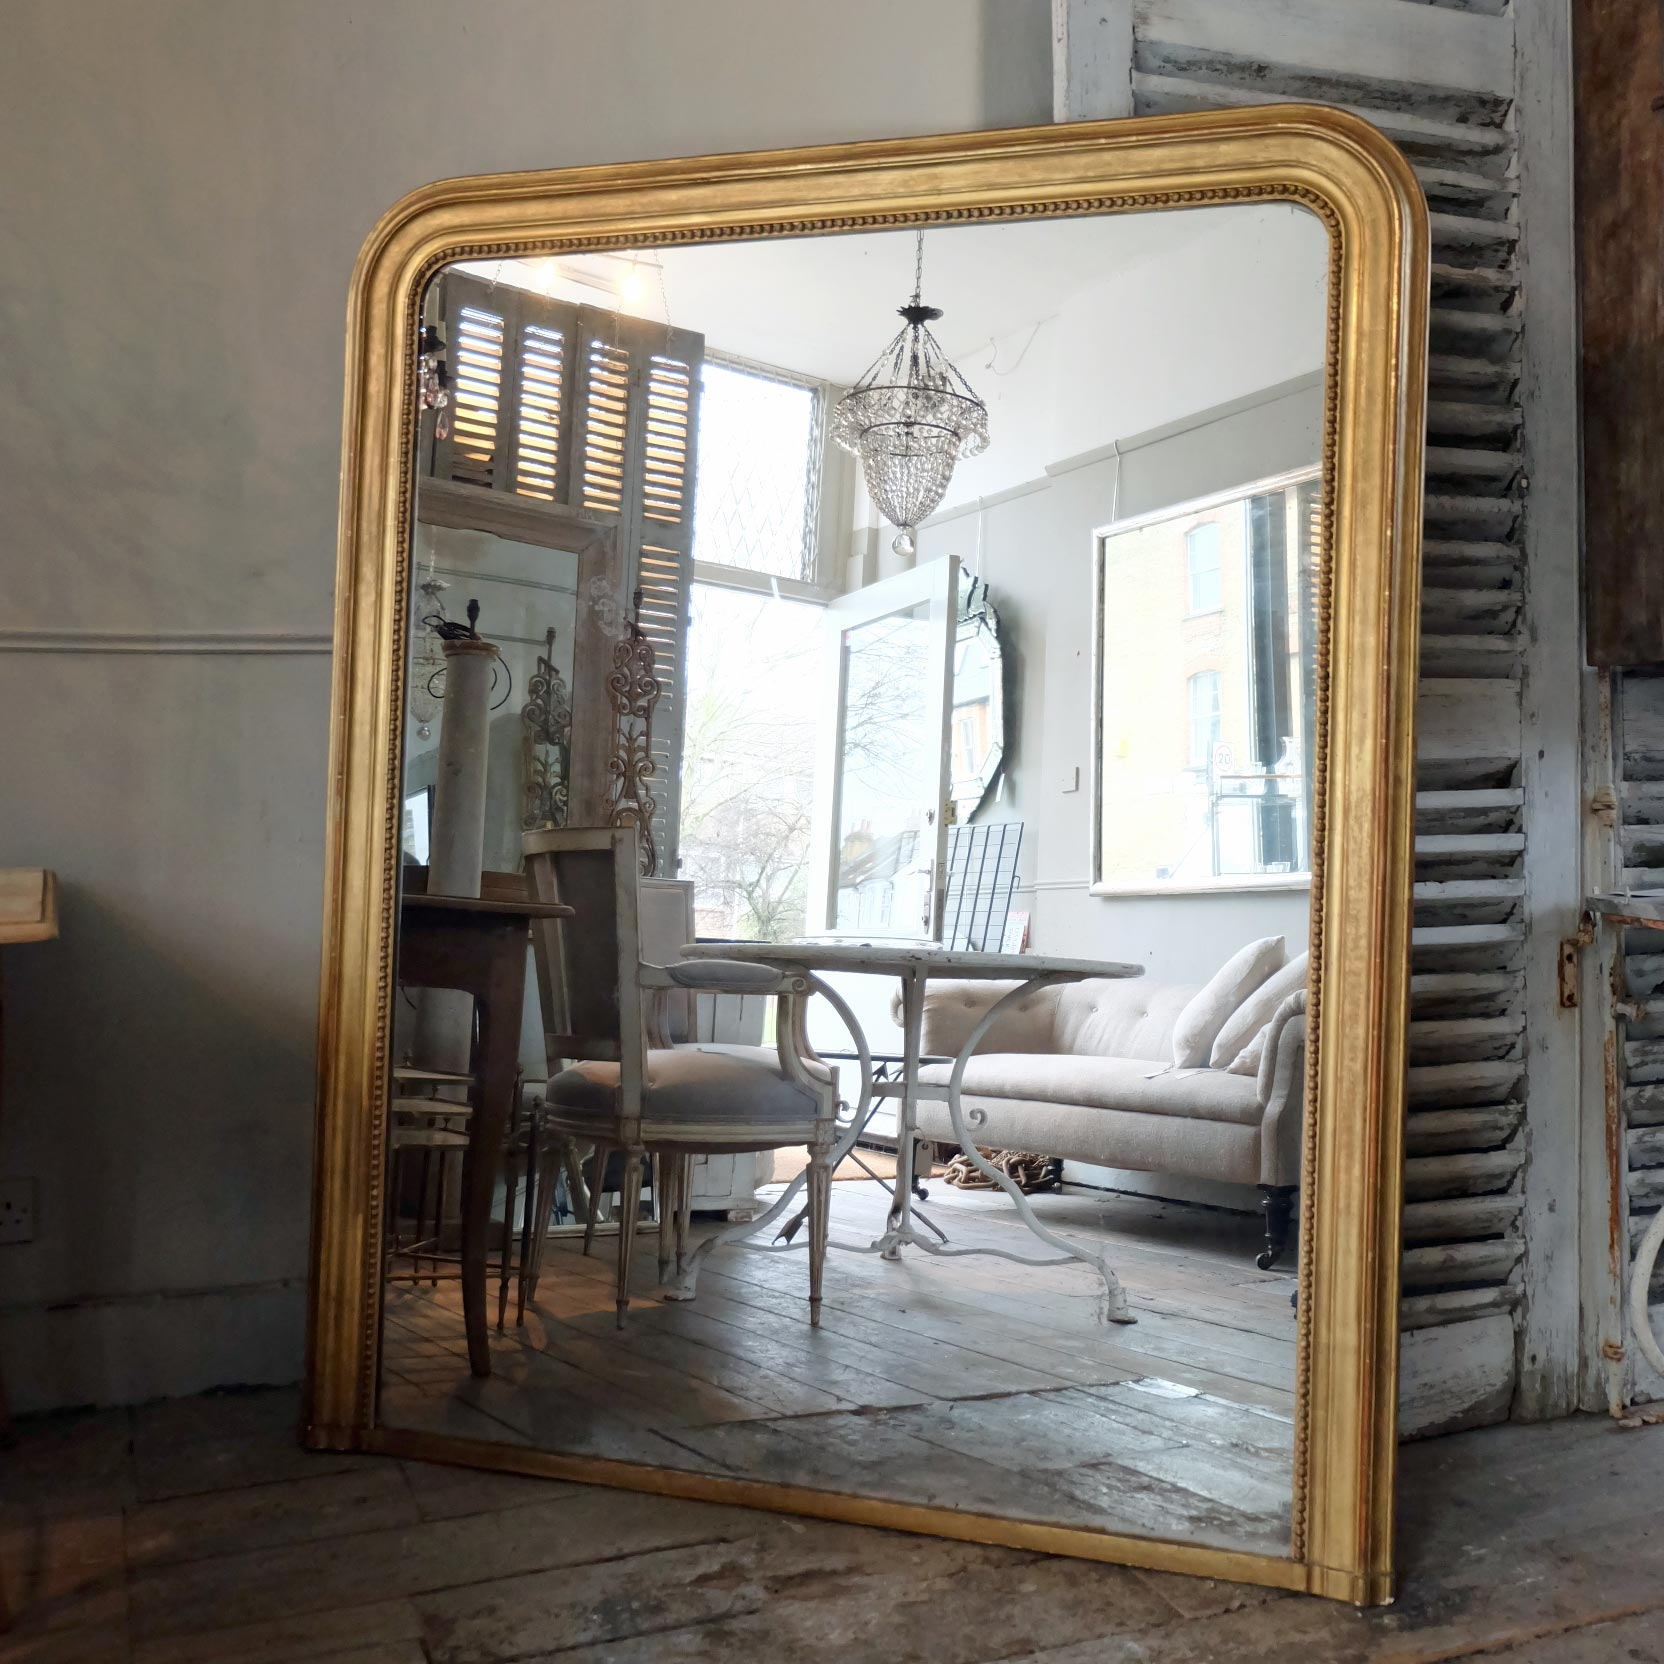 Large Antique Gilt Mirror Puckhaber Decorative Antiques Pertaining To Antique Gilt Mirrors (Image 13 of 15)